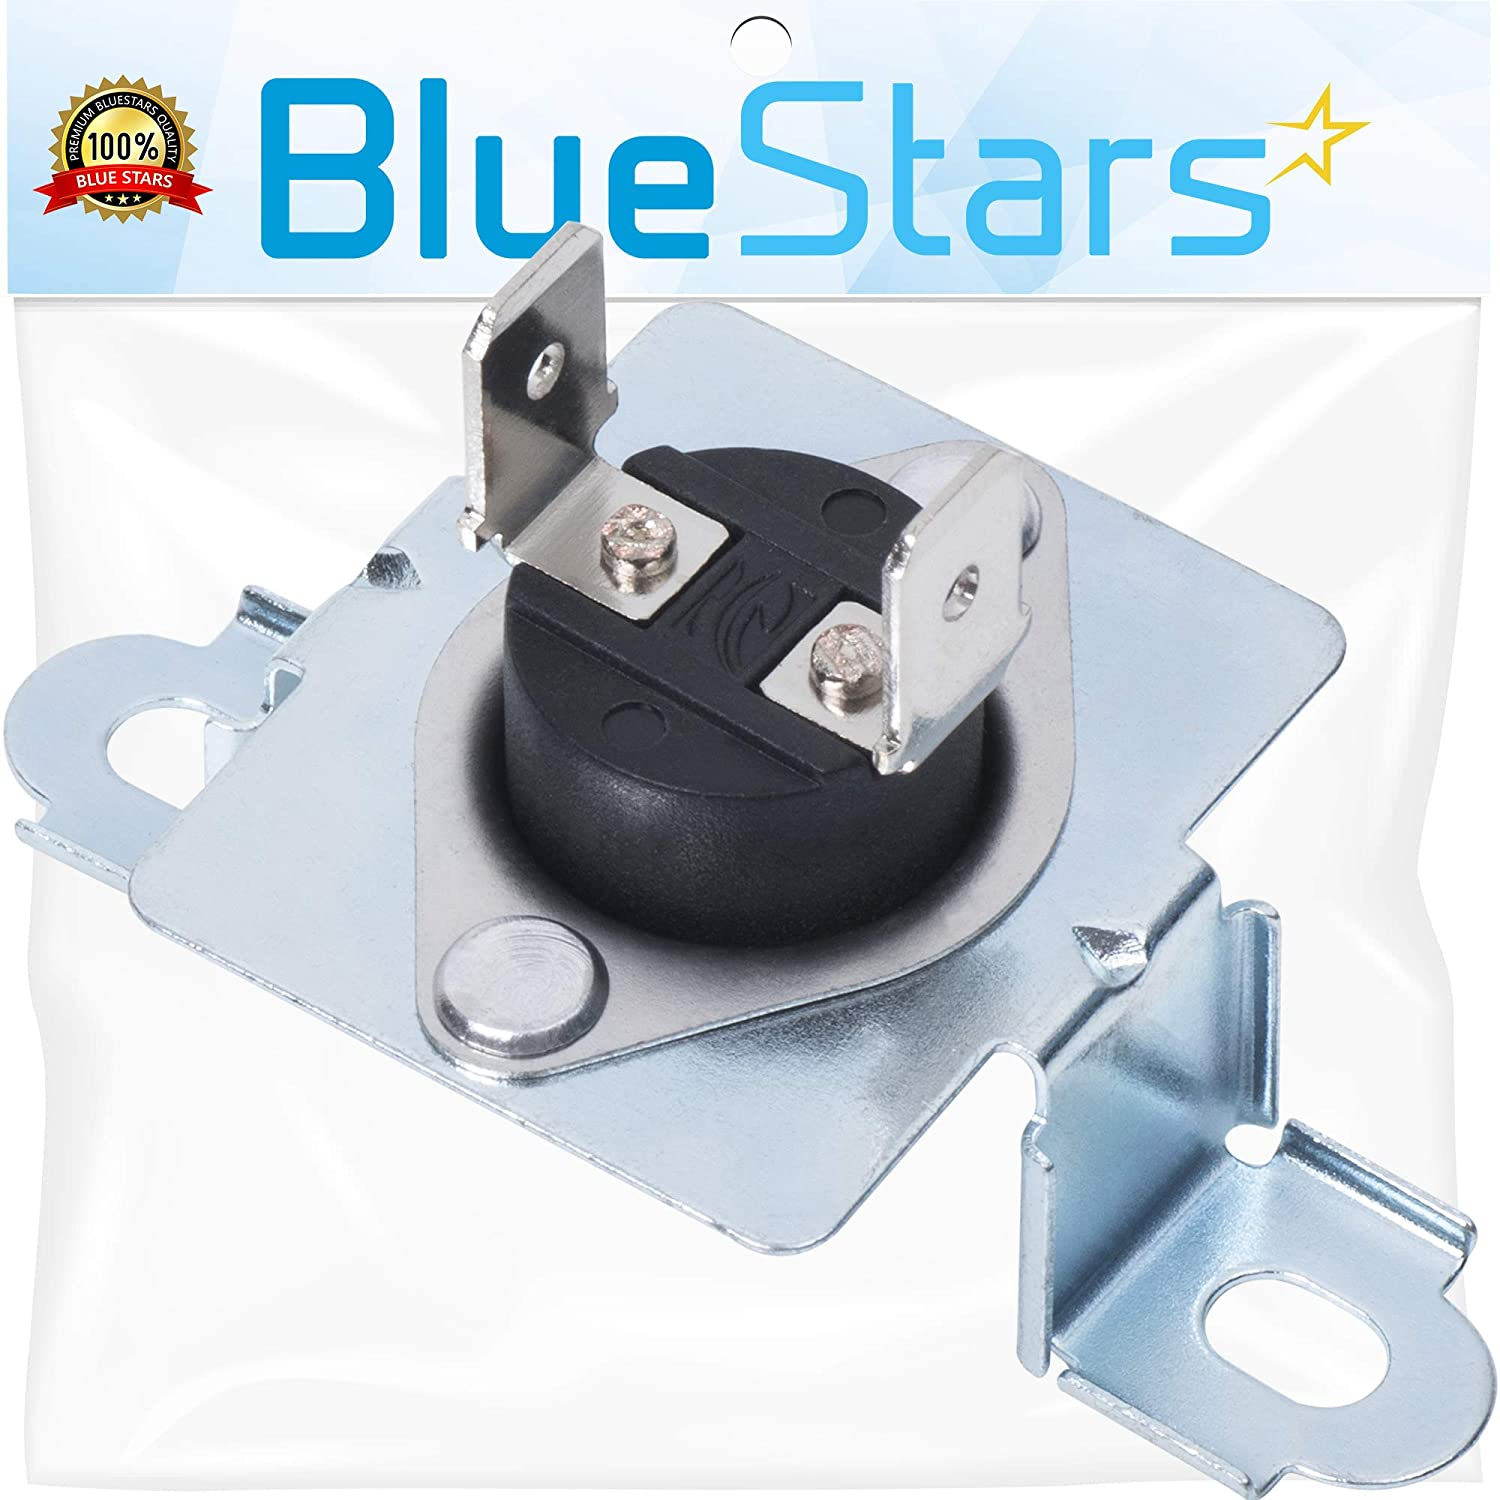 137032600 Dryer Thermal Limiter Replacement part by Blue Stars - Exact Fit for Frigidaire & Electrolux Dryers - Replaces 137060800, 7137032600